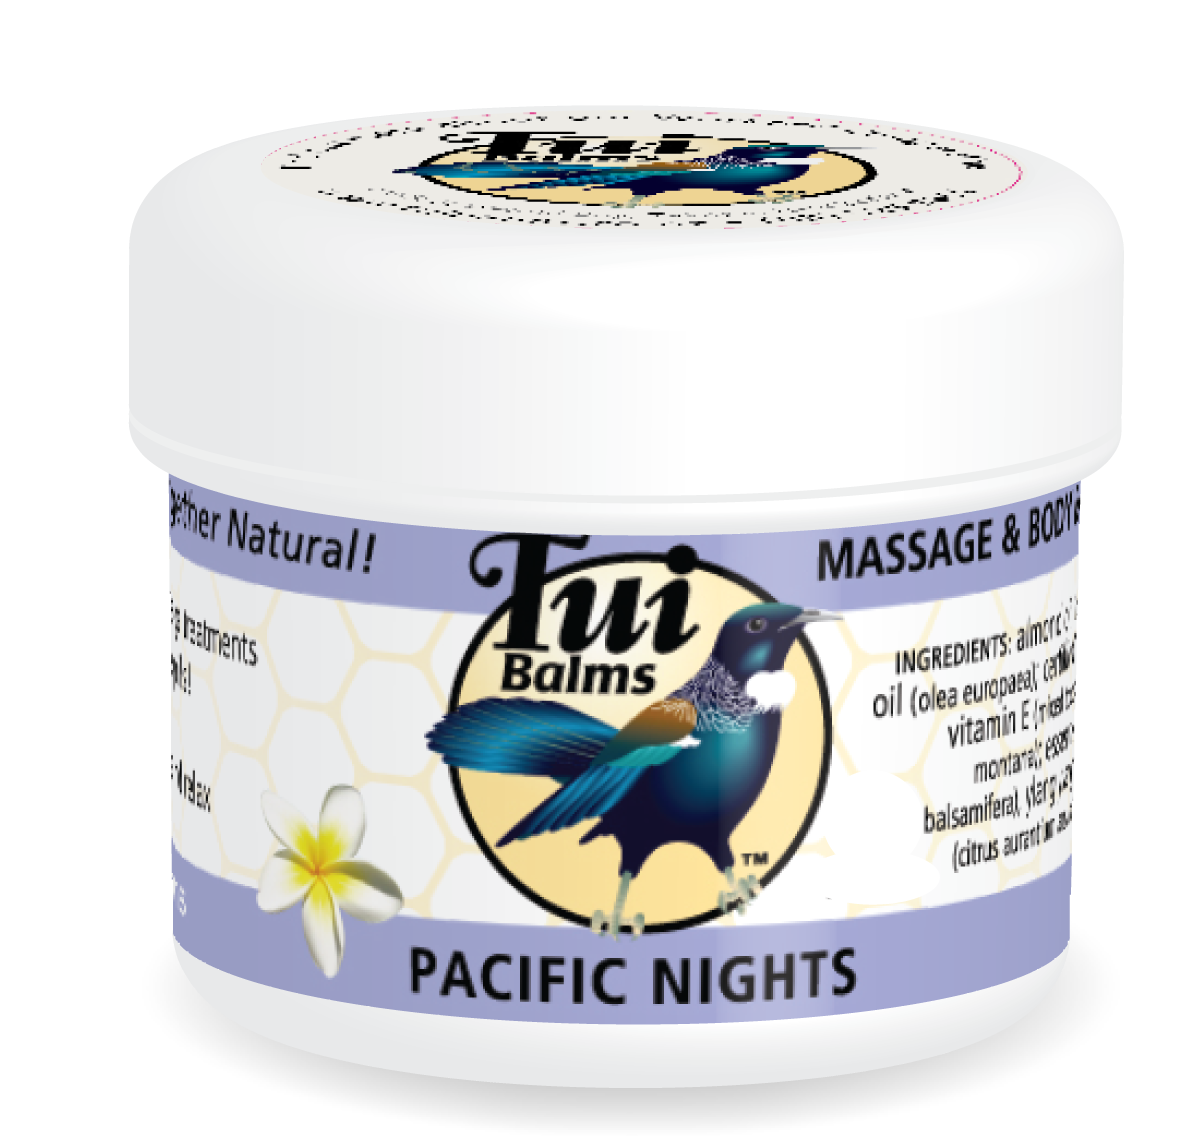 Massage & Body Balm PACIFIC NIGHTS